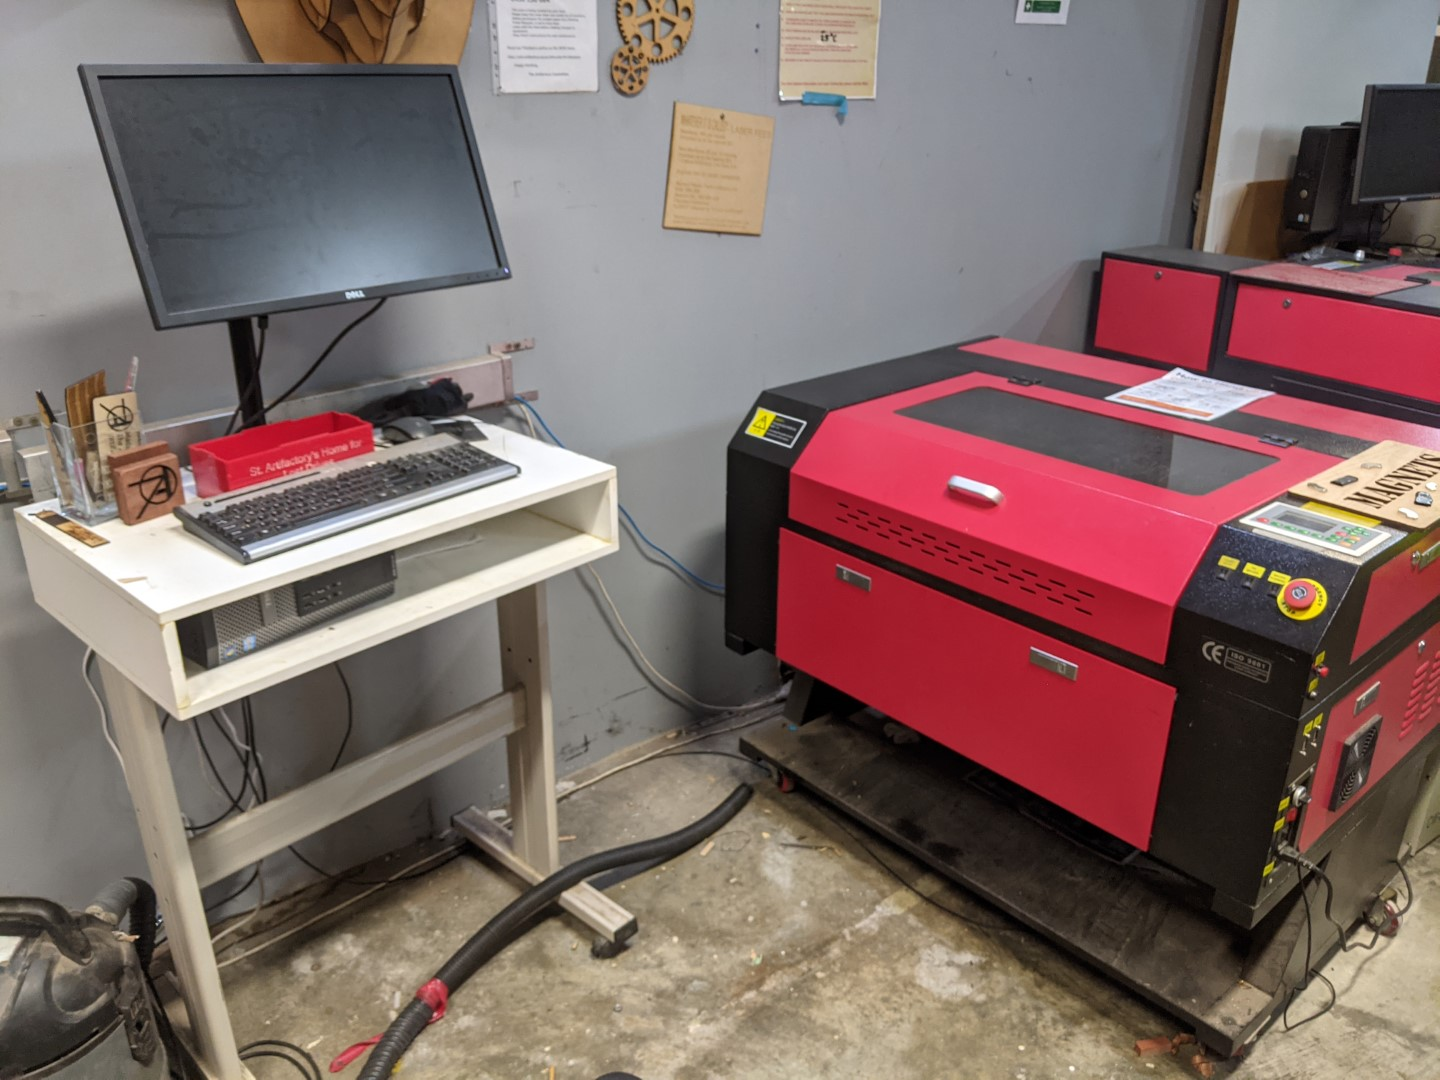 tools:lasercutters:middle_red_photo.jpg